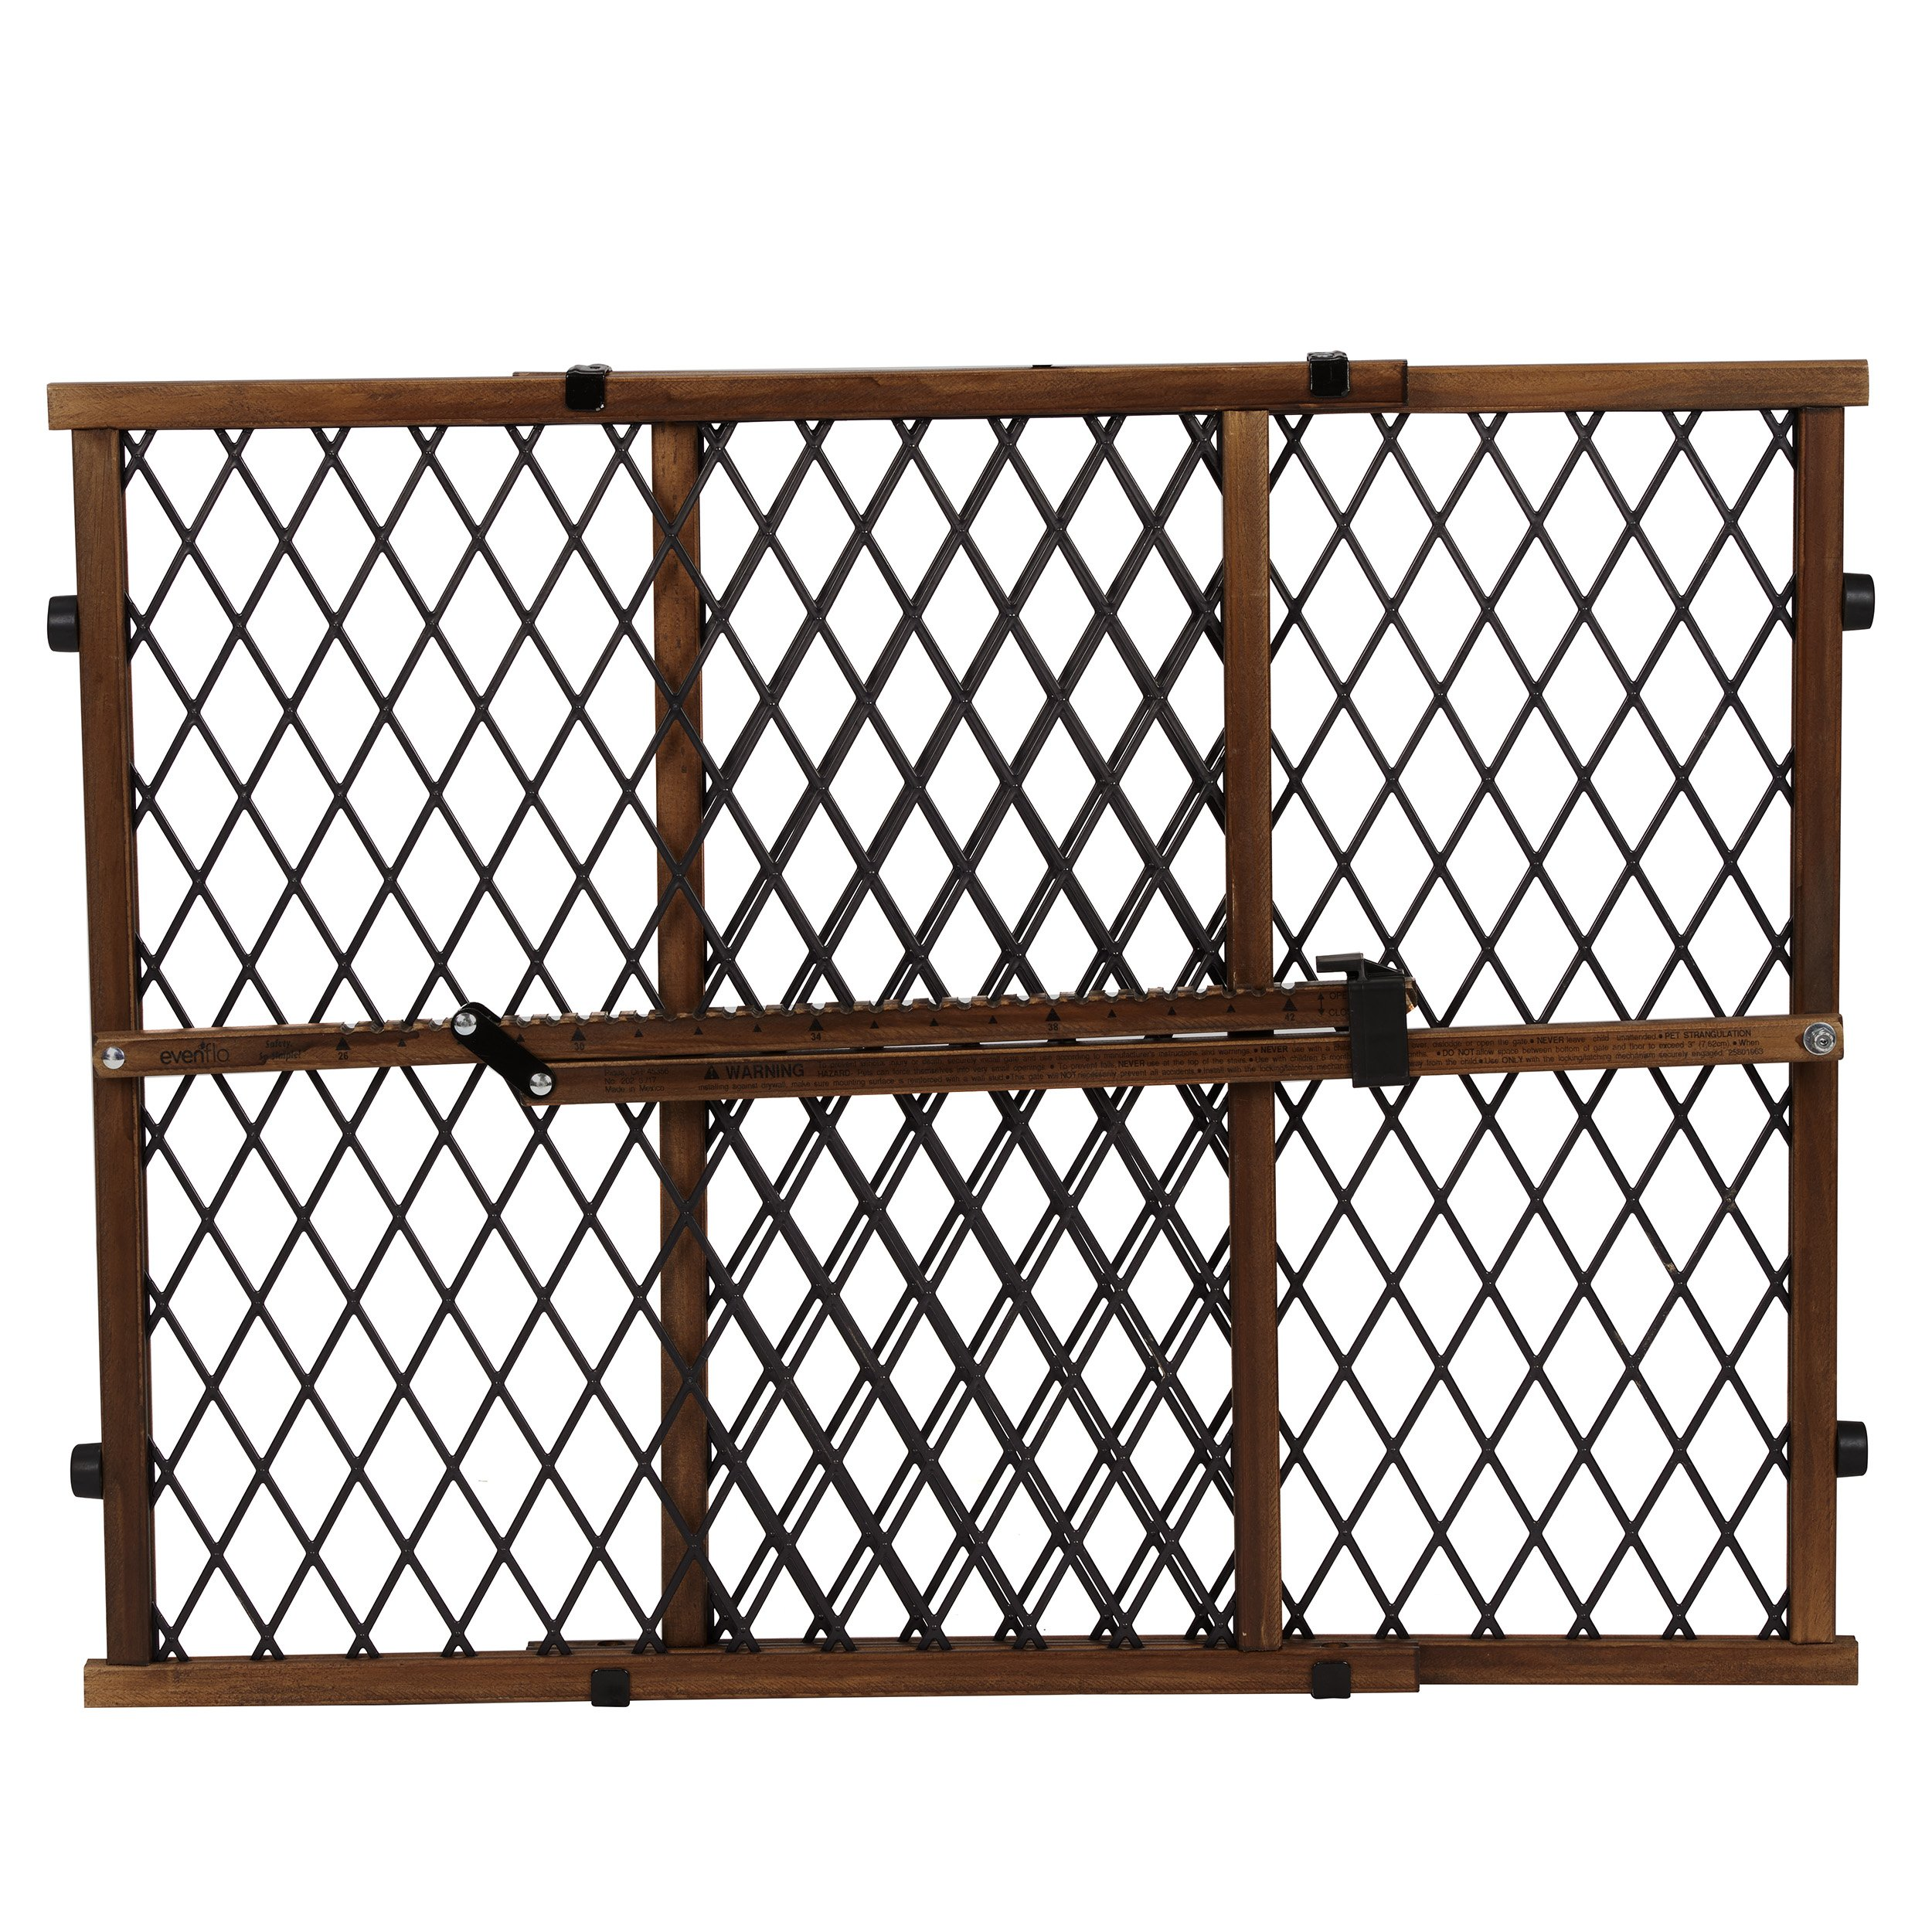 Evenflo Position and Lock Farmhouse Pressure Mount Gate, Dark Wood by Evenflo